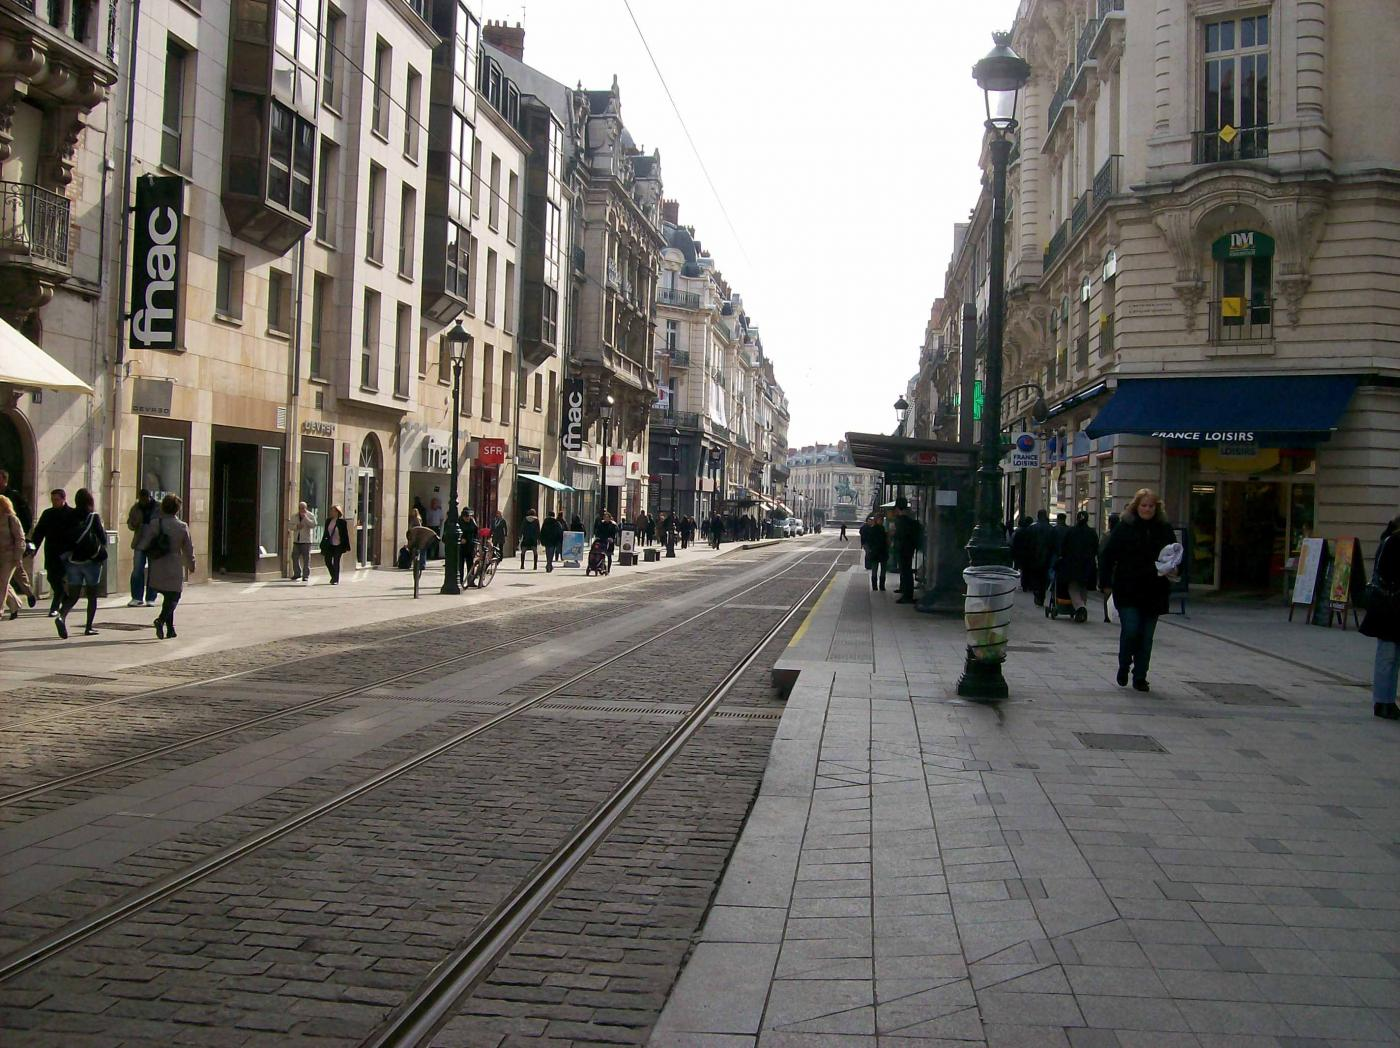 Few Pics From Orleans France